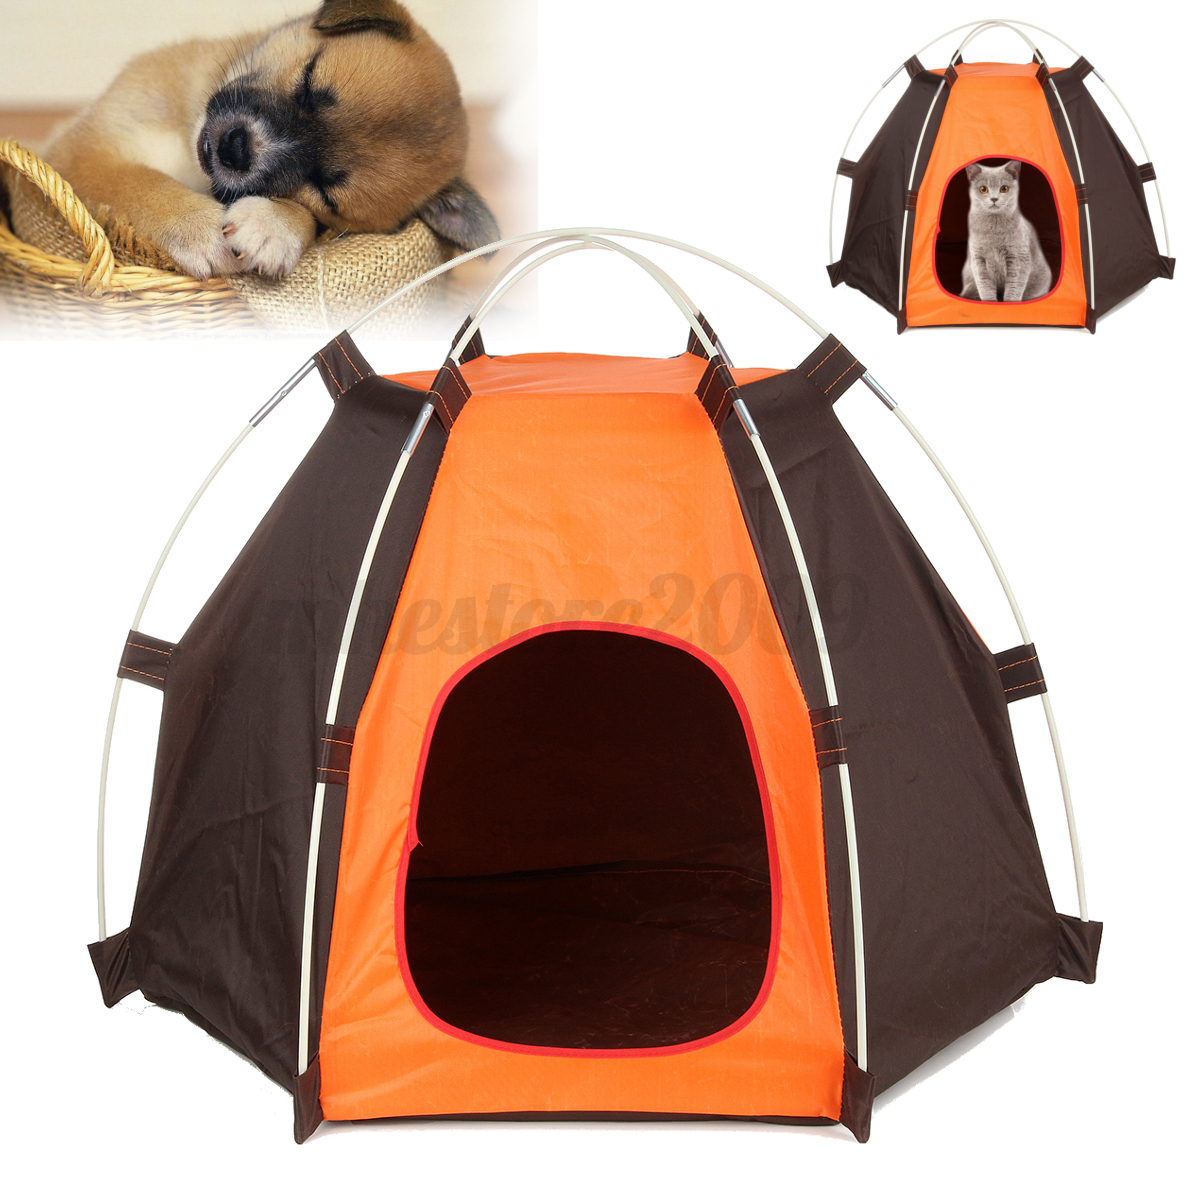 Aliexpress Com Buy Dog Portable Outdoor Travel Water: Hot Portable Folding Dog Pet House Bed Tent Waterproof Cat